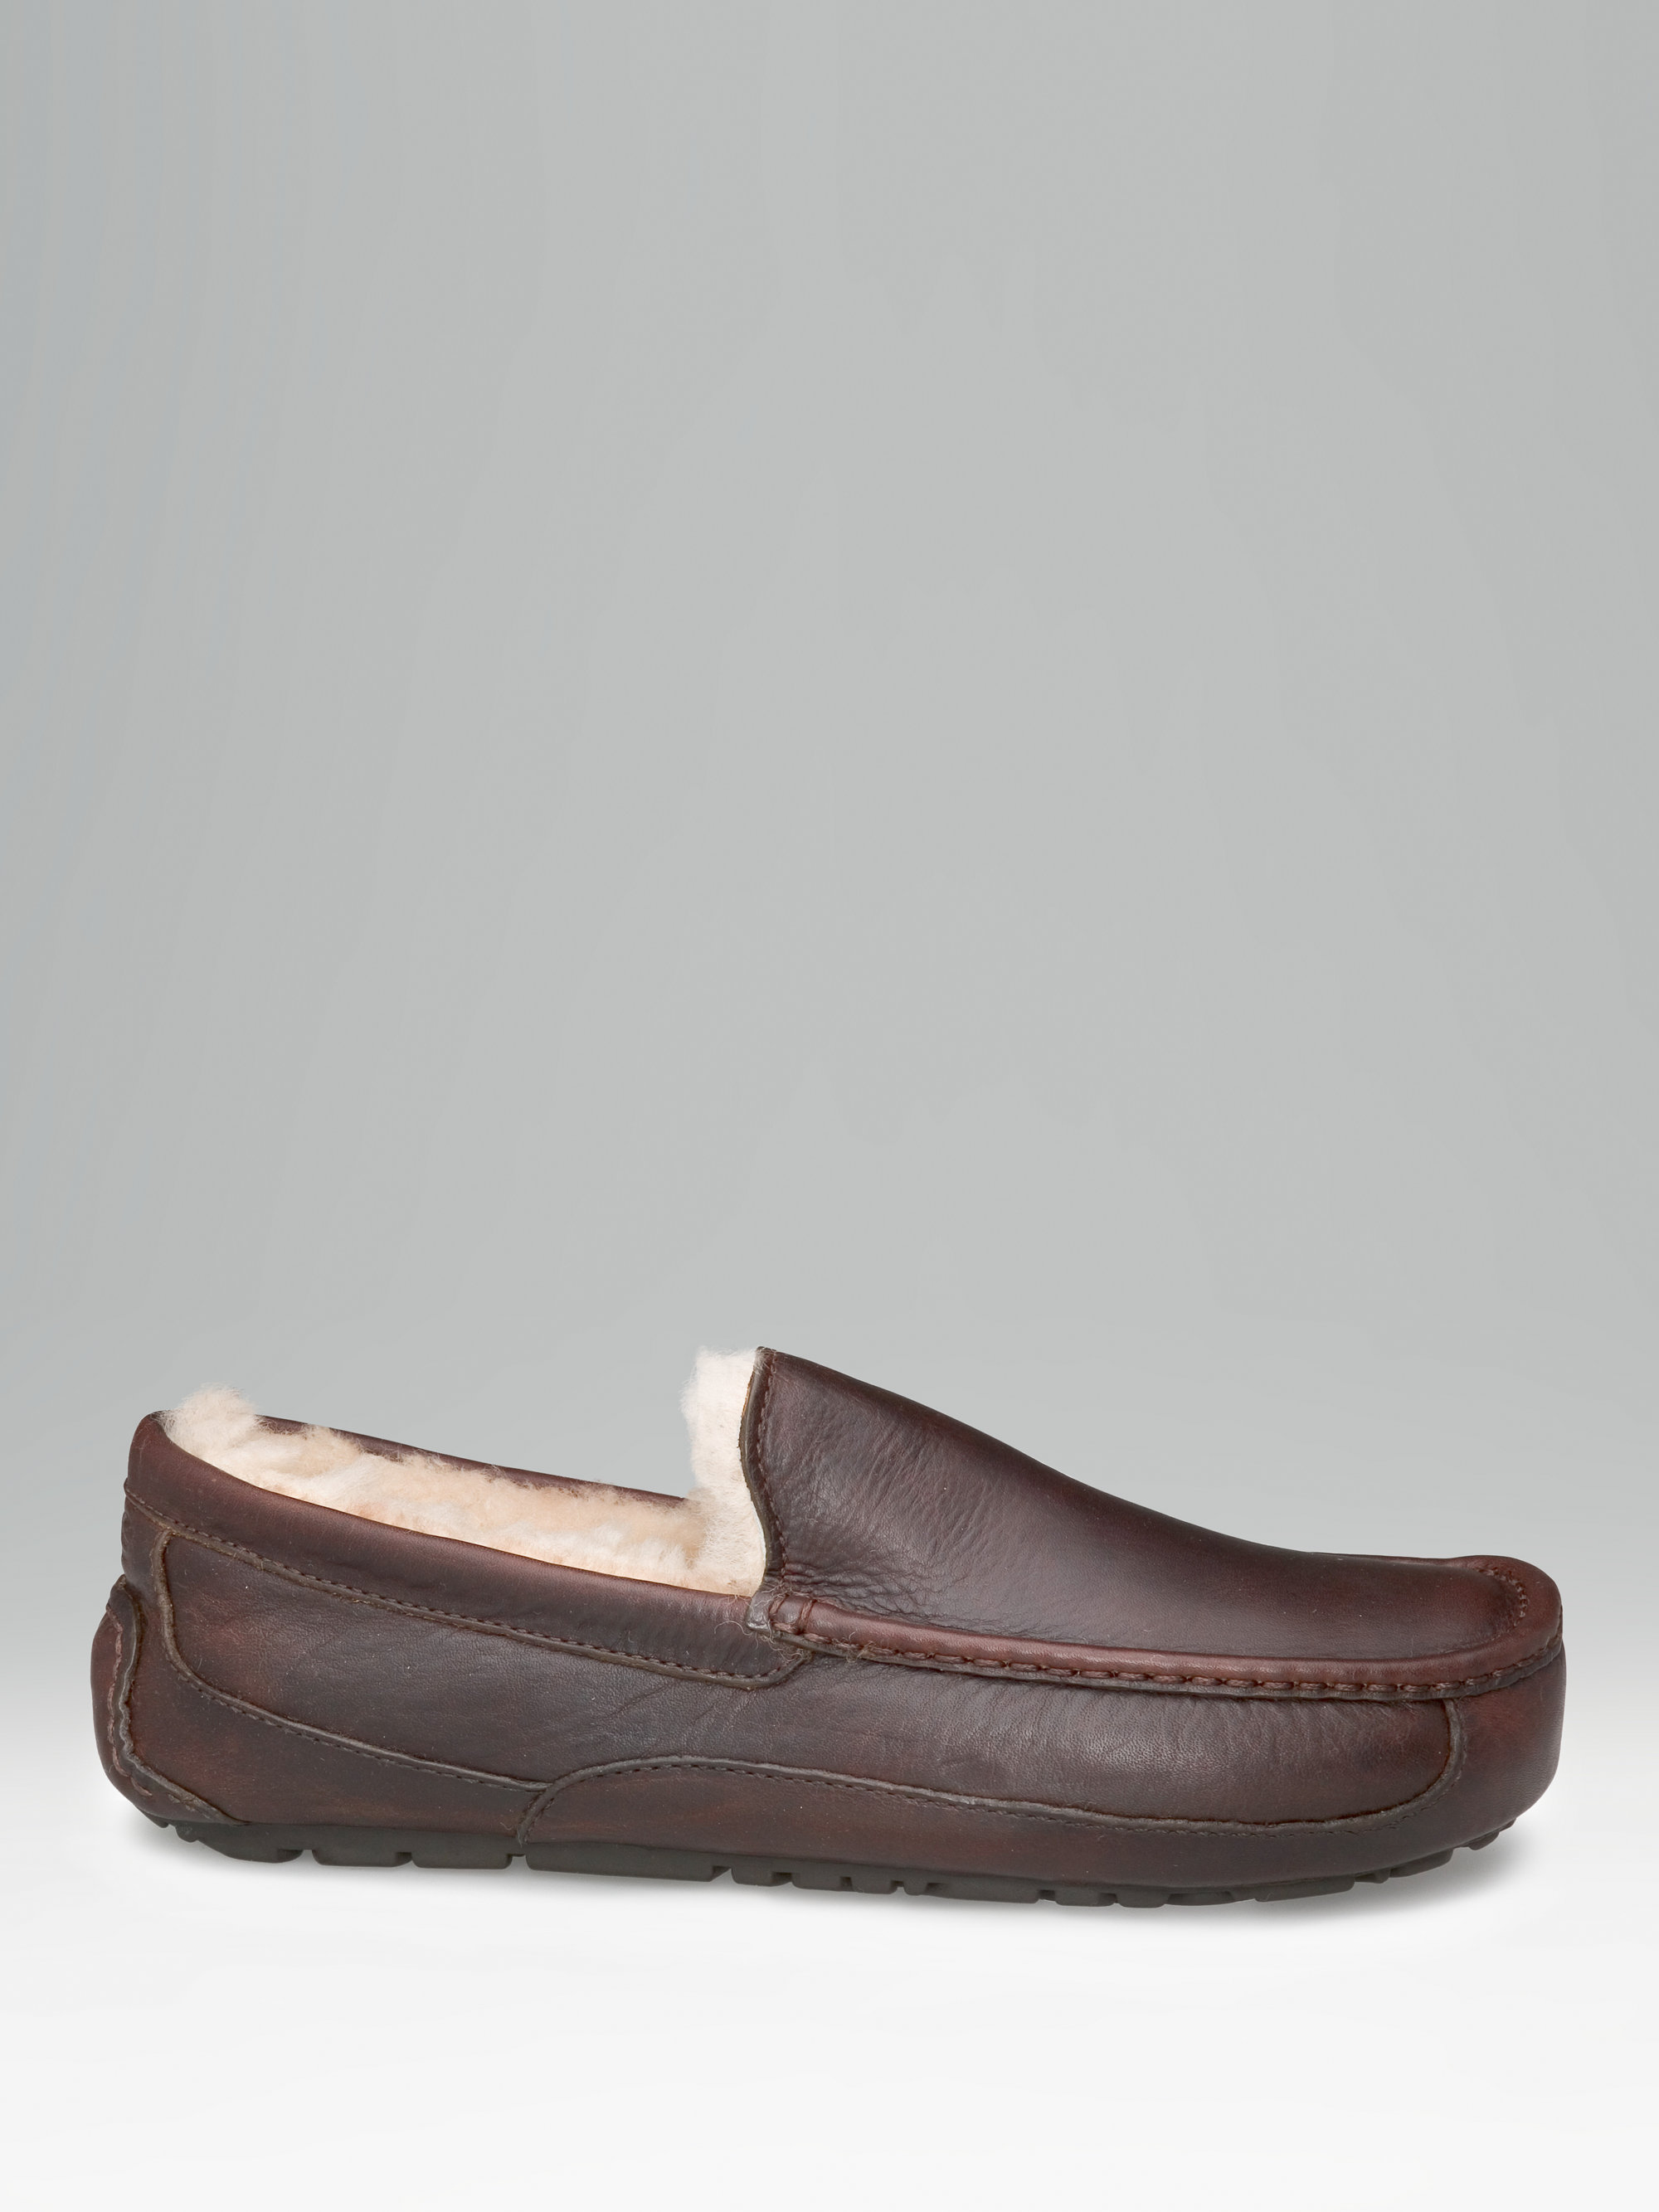 bf58c3bdcdf0 Lyst - UGG Mens Ascot Leather Slippers in Brown for Men